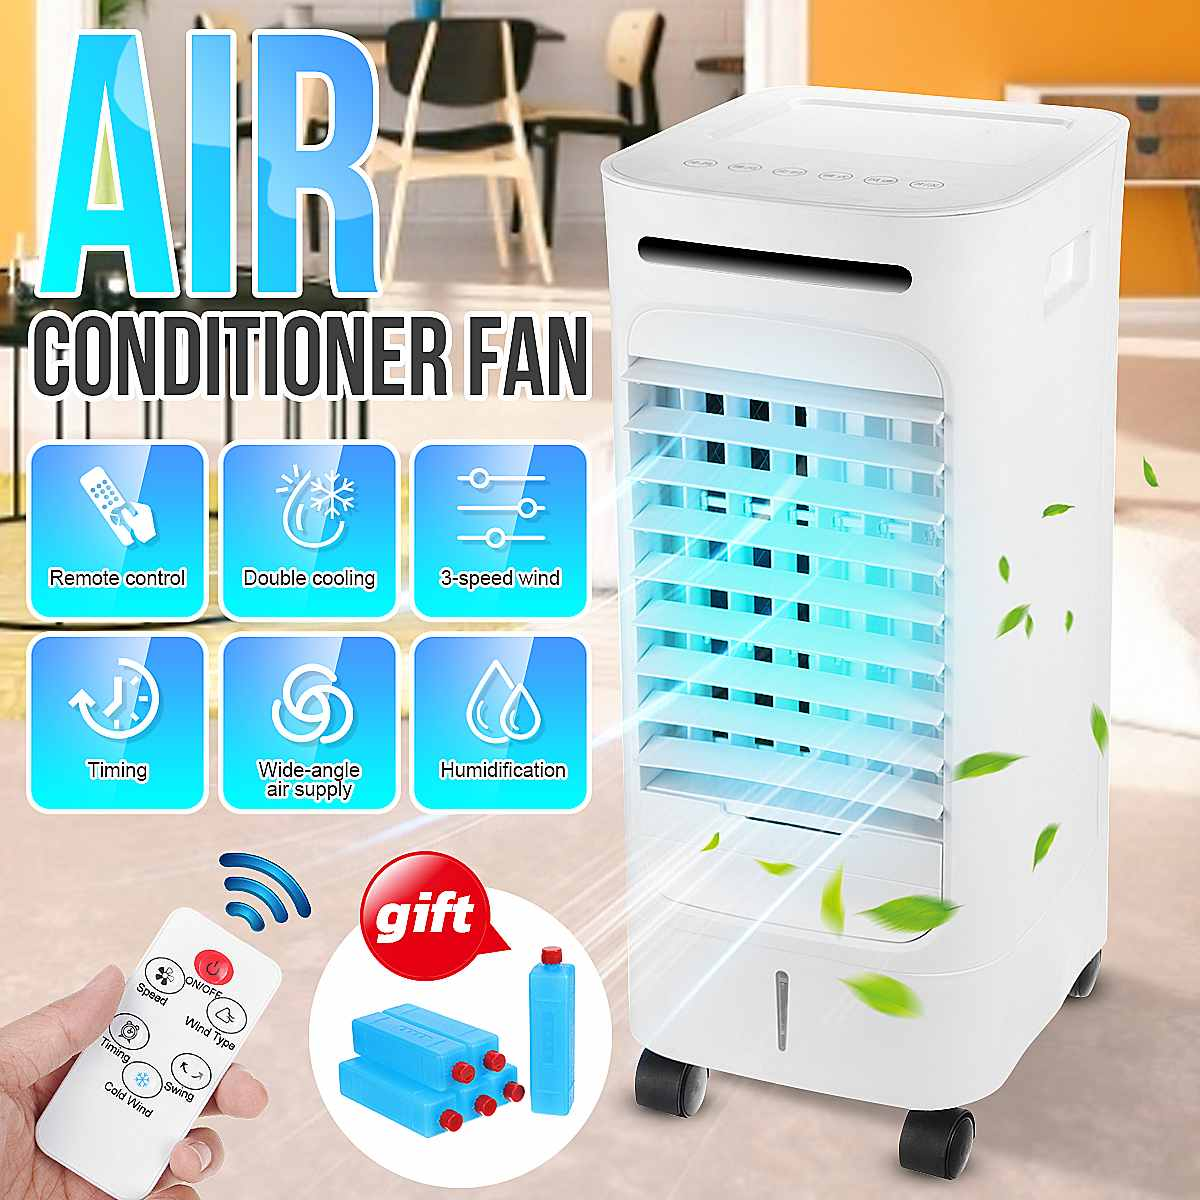 75W Home Mobile Air Conditioning Fan Portable 2.5L Tank Humidifier Cooler 3 Fan Modes Sleep Timer 220V Bedroom Living Room Offic